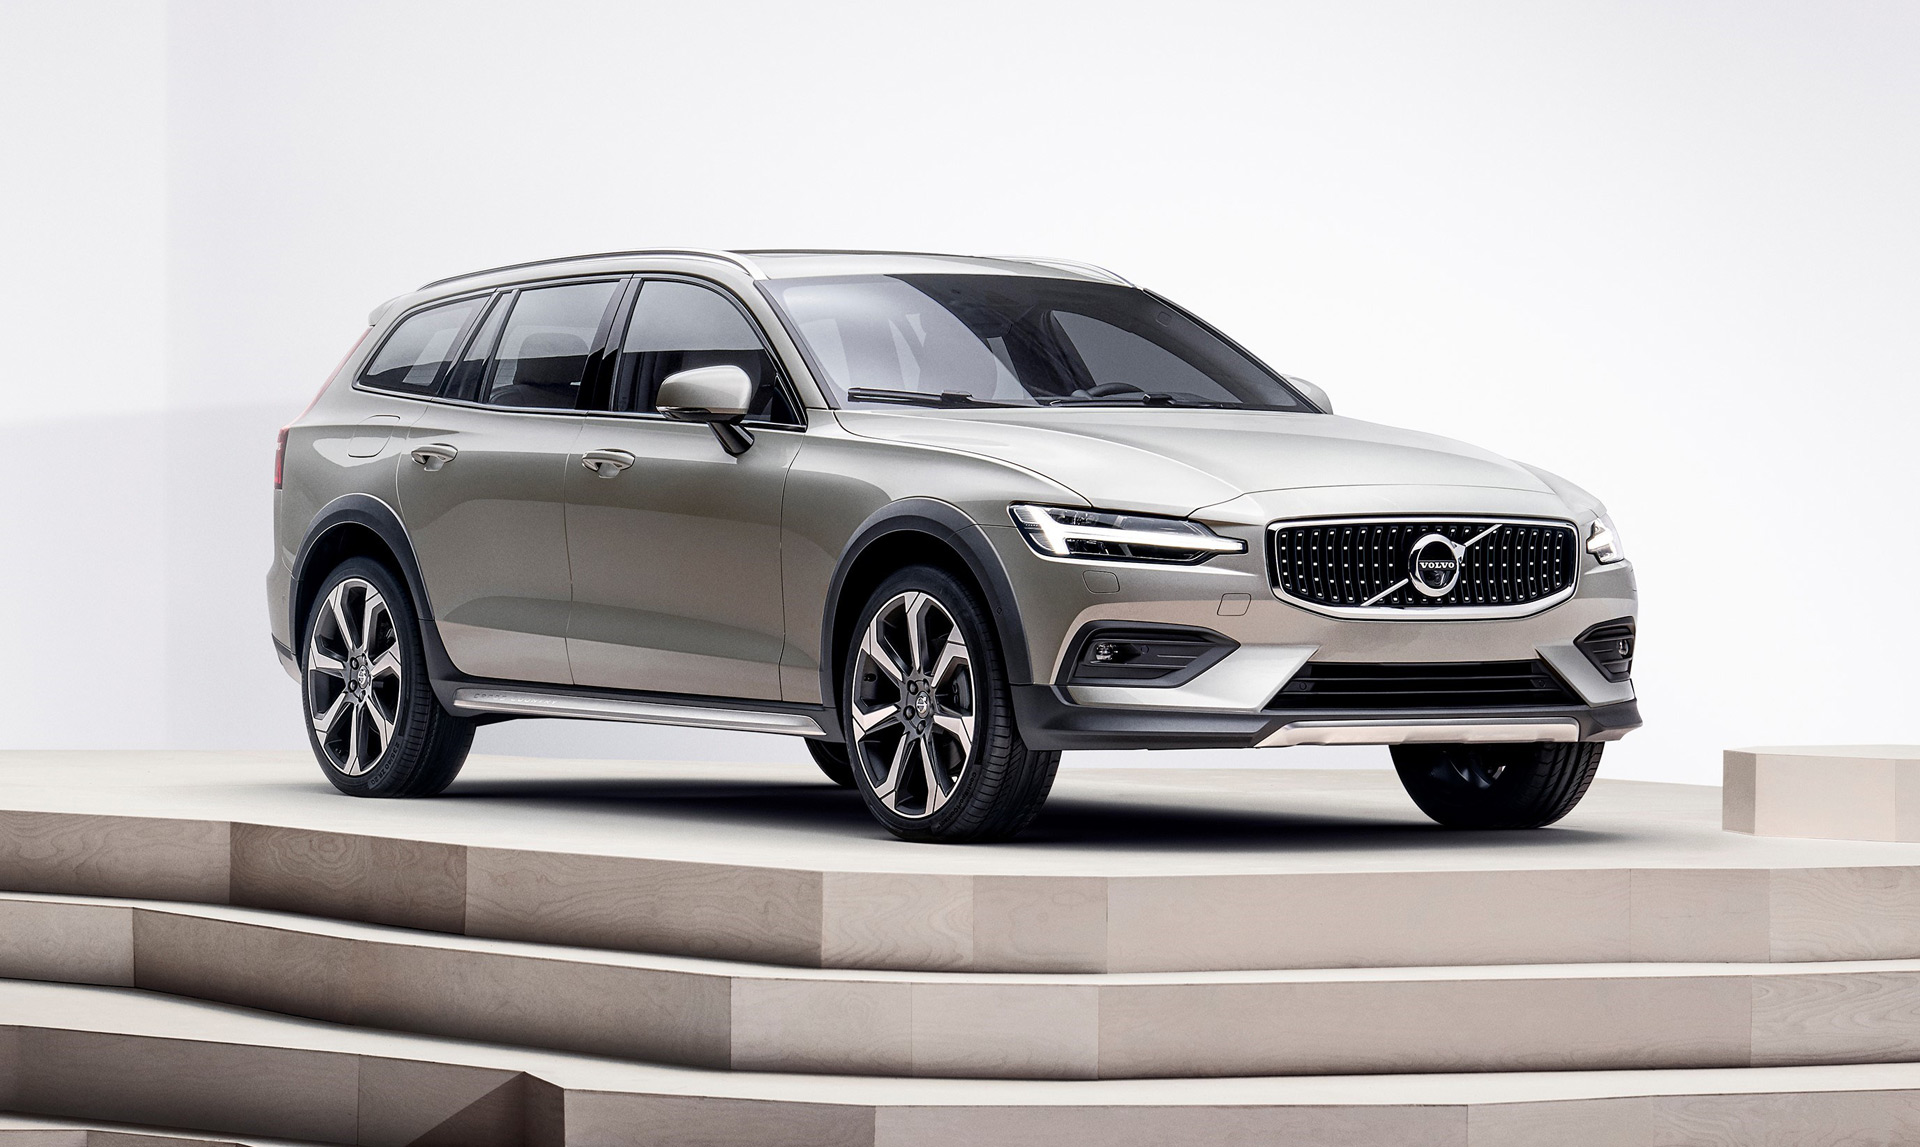 2019 Volvo V60 Cross Country first look: Sultry Swede on stilts